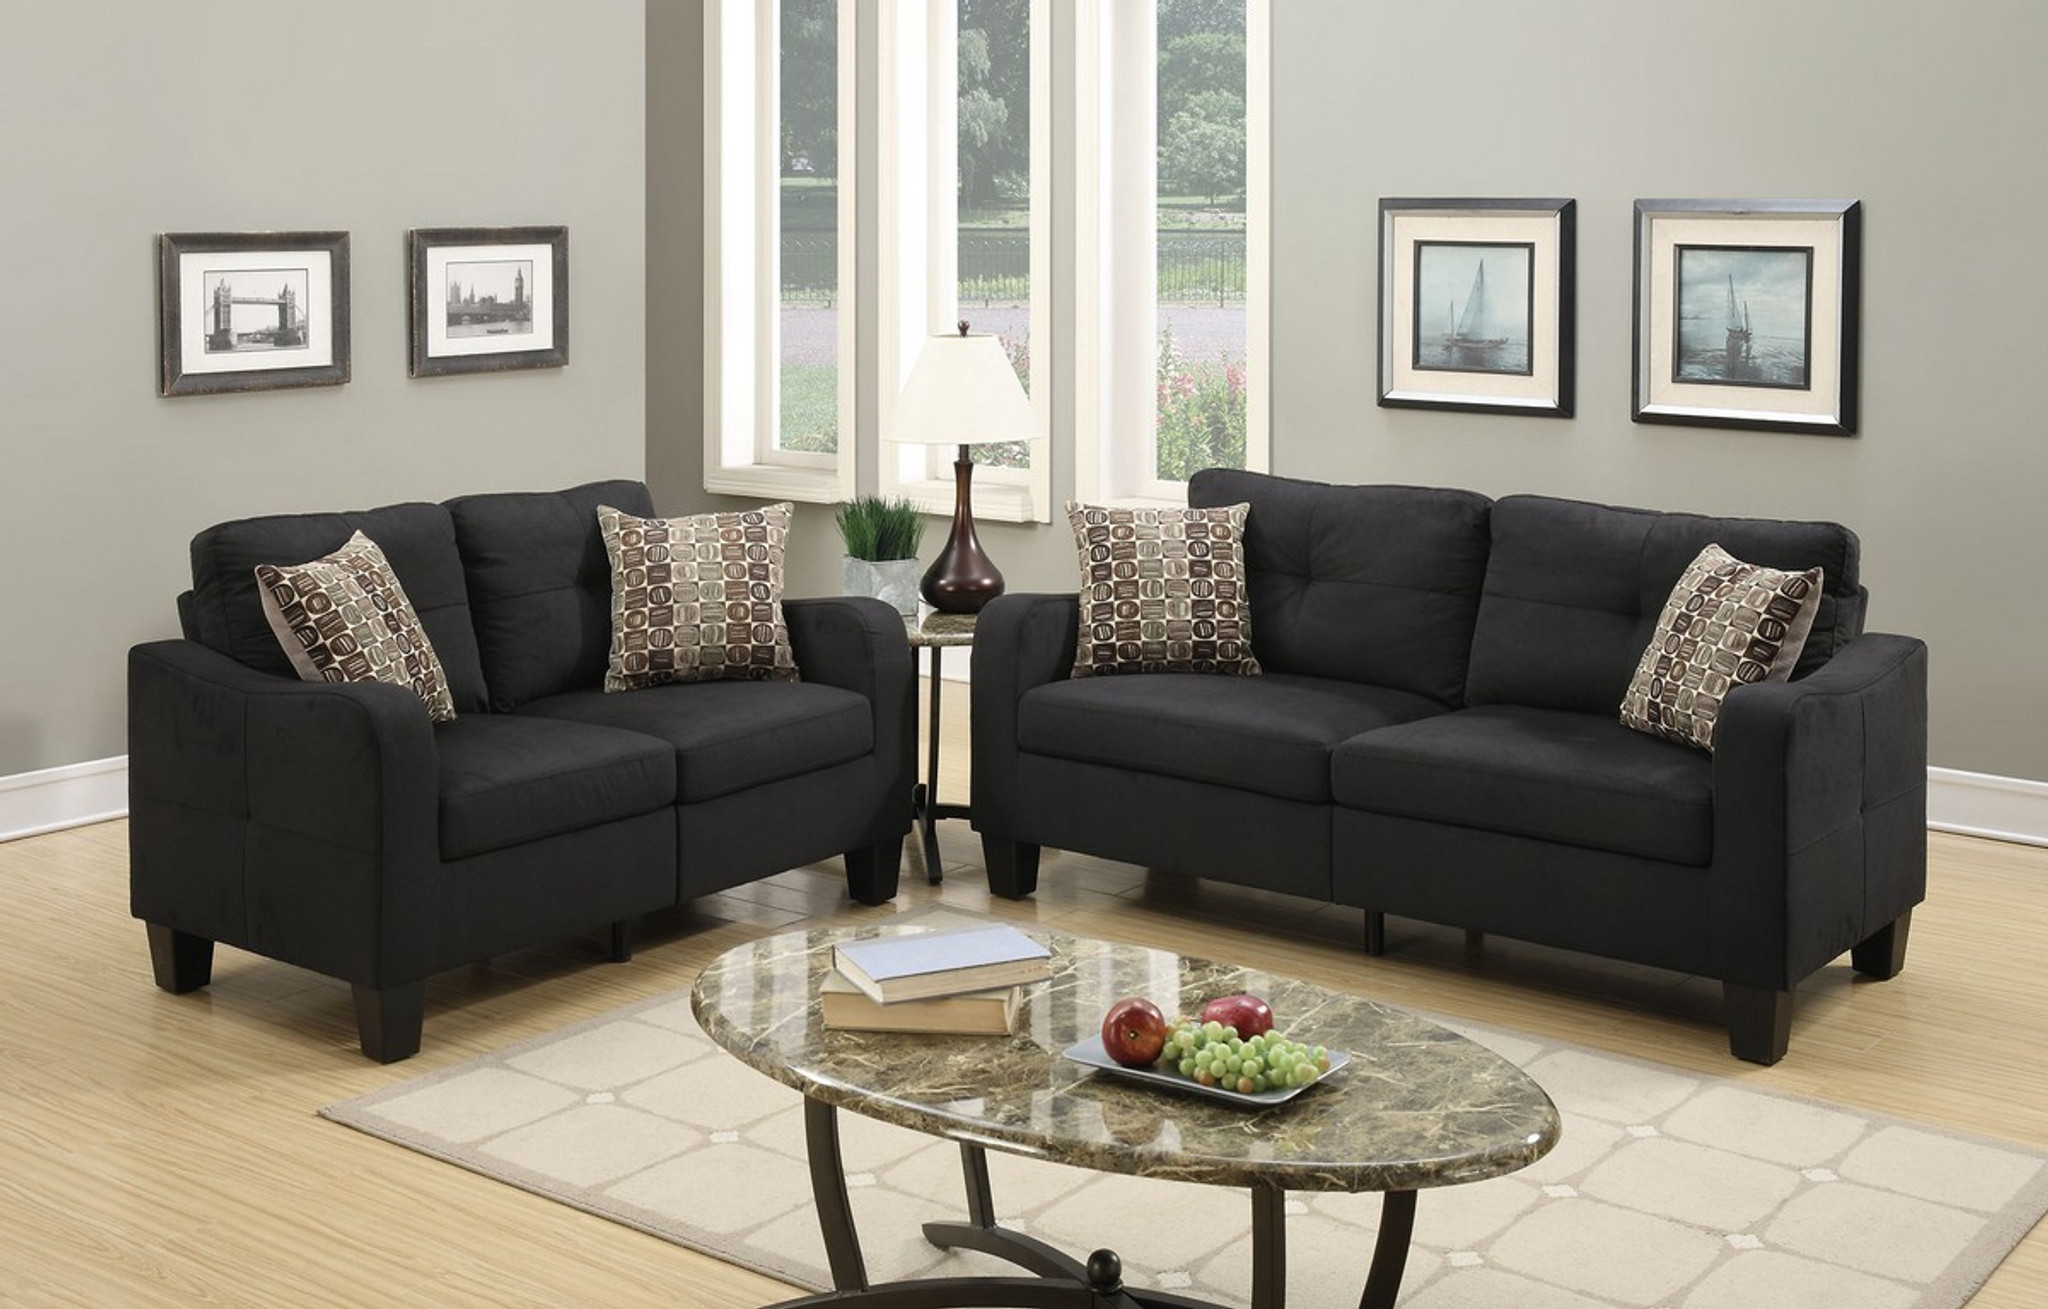 Picture of: Kassa Mall Home Furniture F6922 Loveseat Sofa Set With Four Accent Pillows And In Black Linen